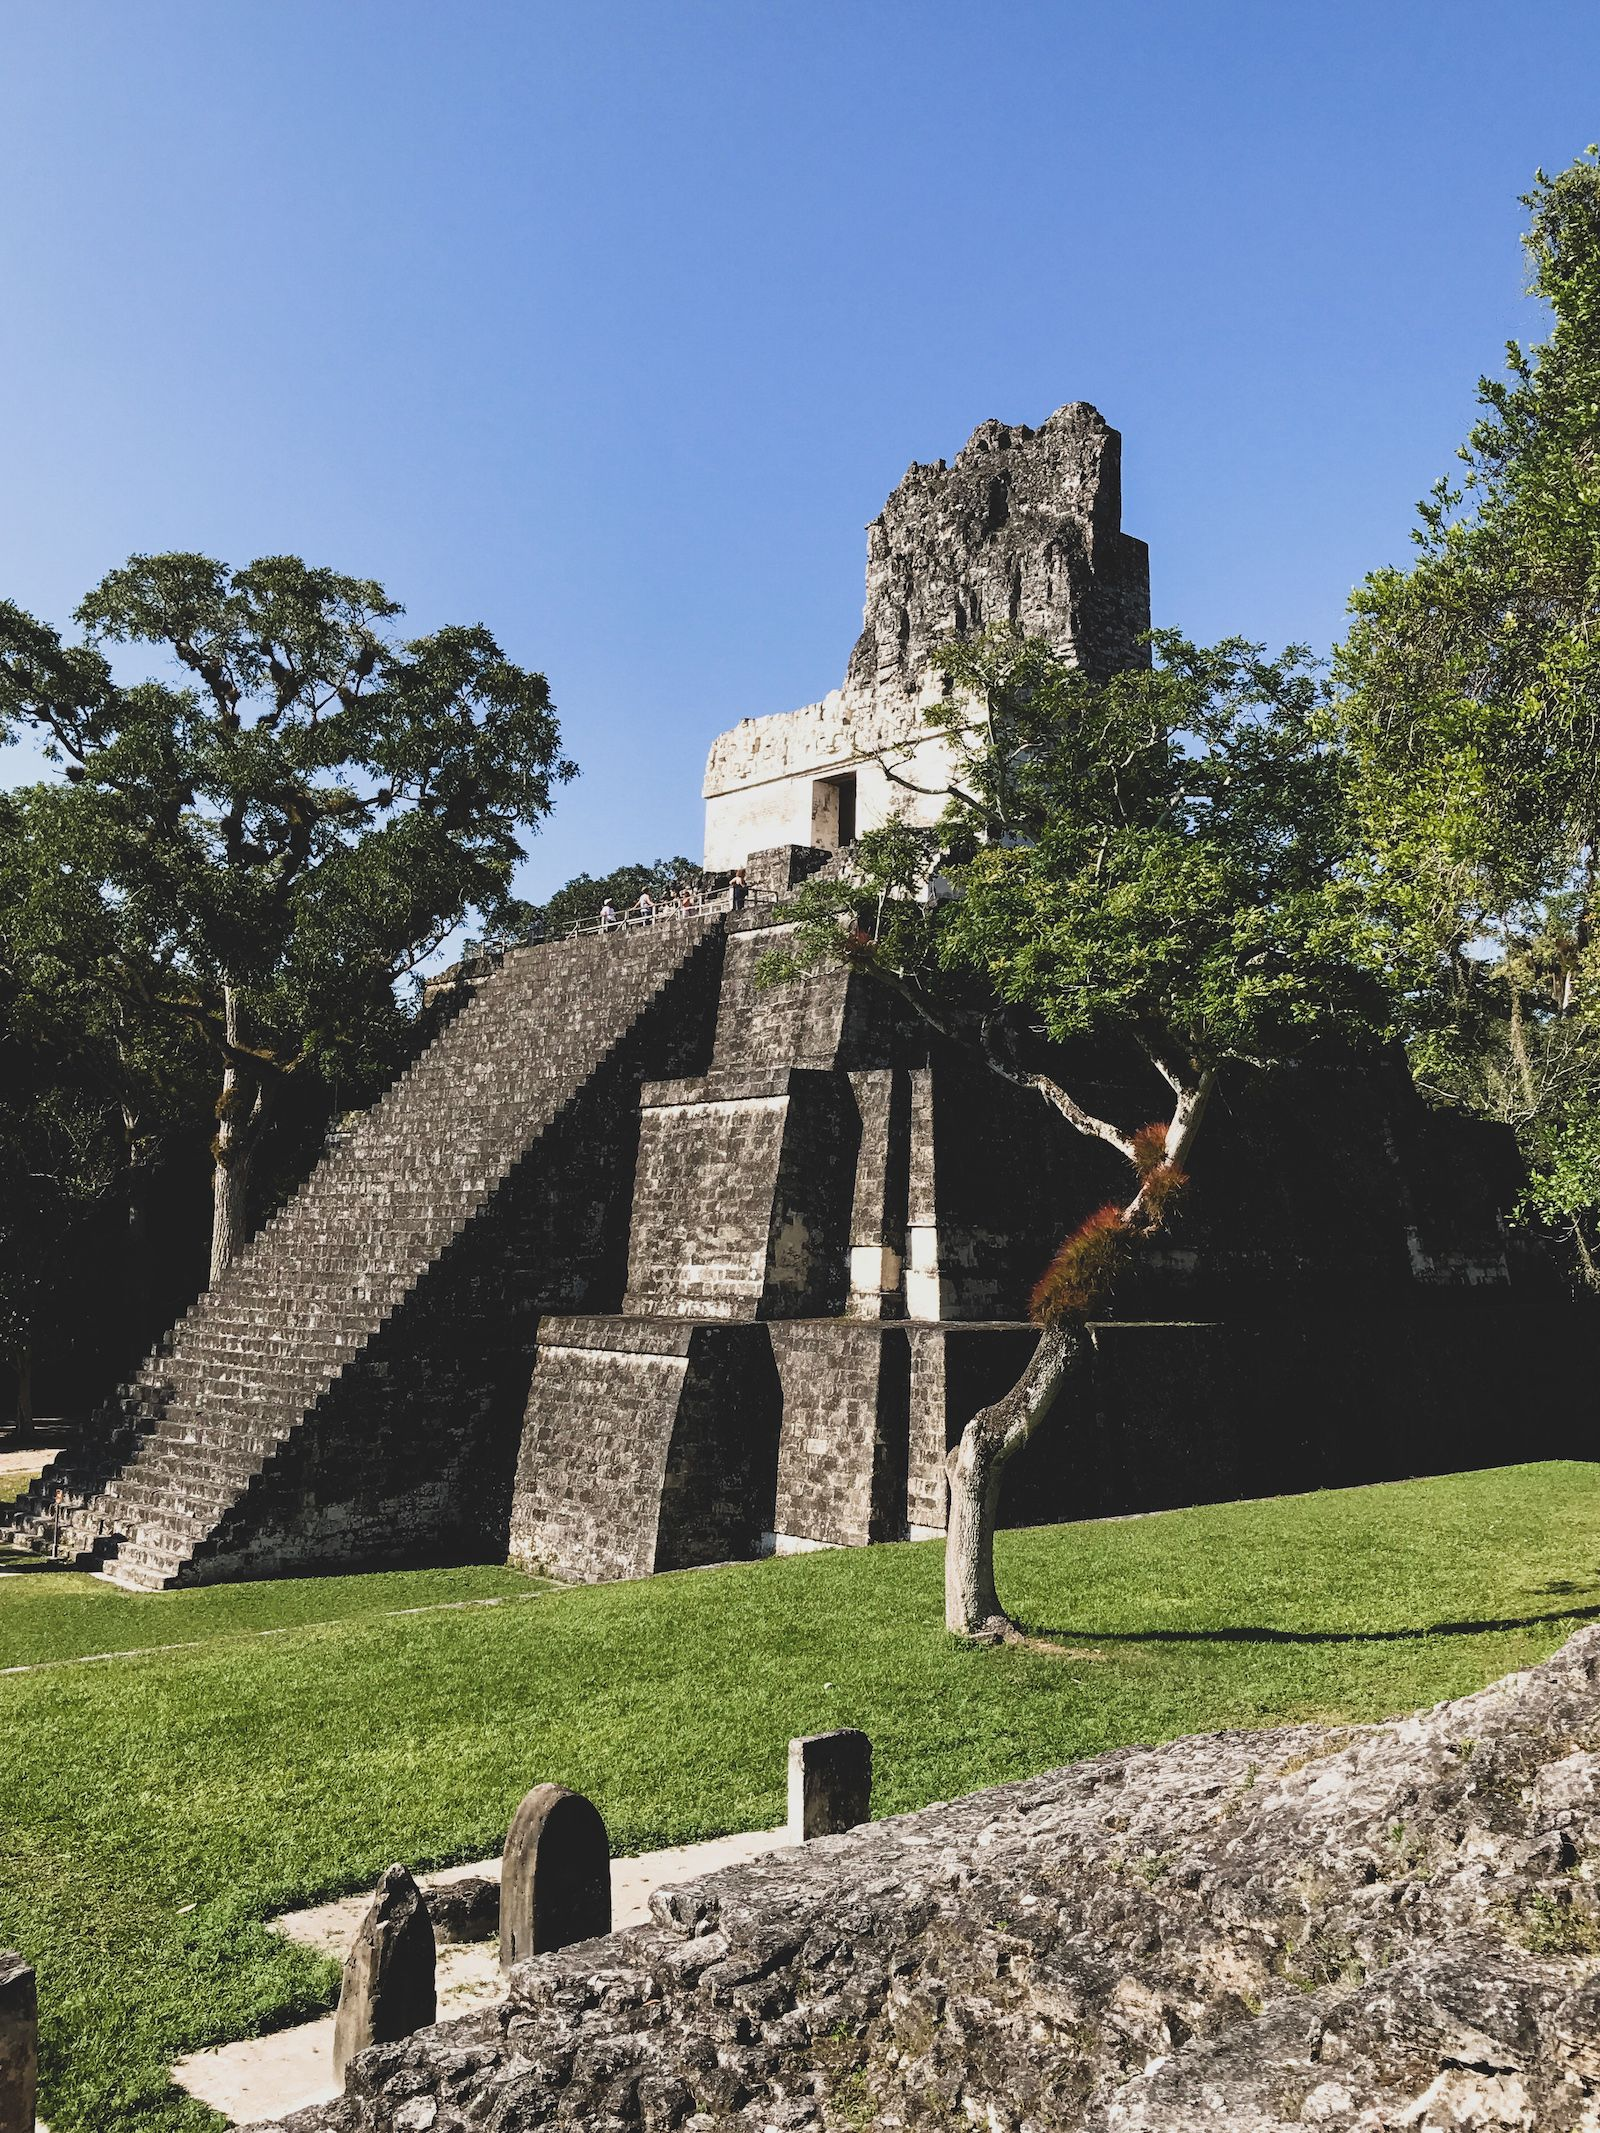 Temple II in Tikal National Park, Guatemala